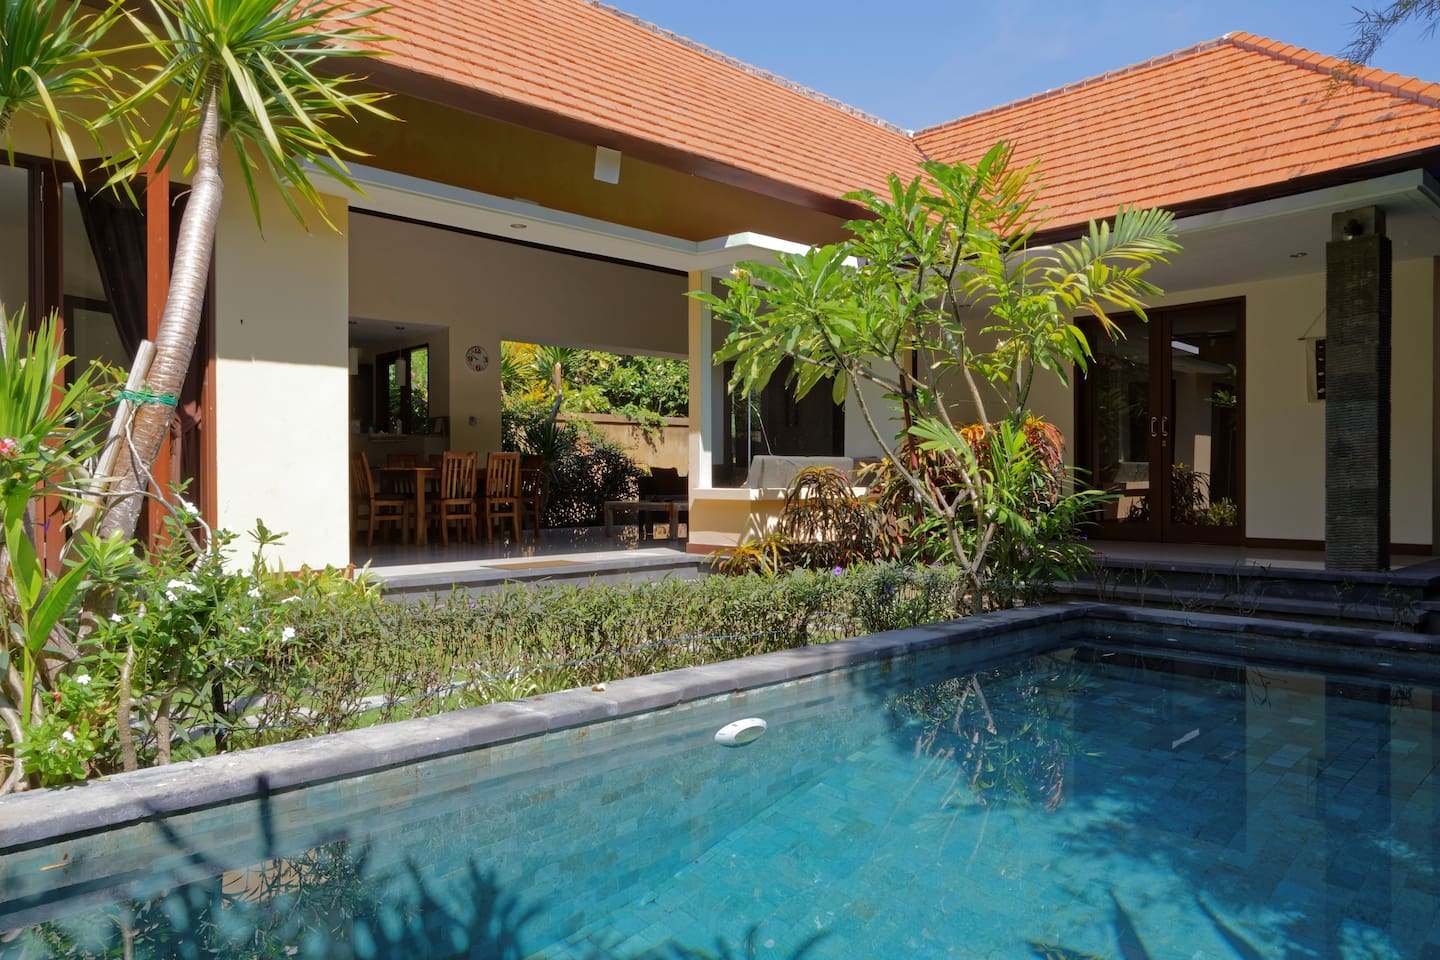 2 bedroom villa with swimming pool